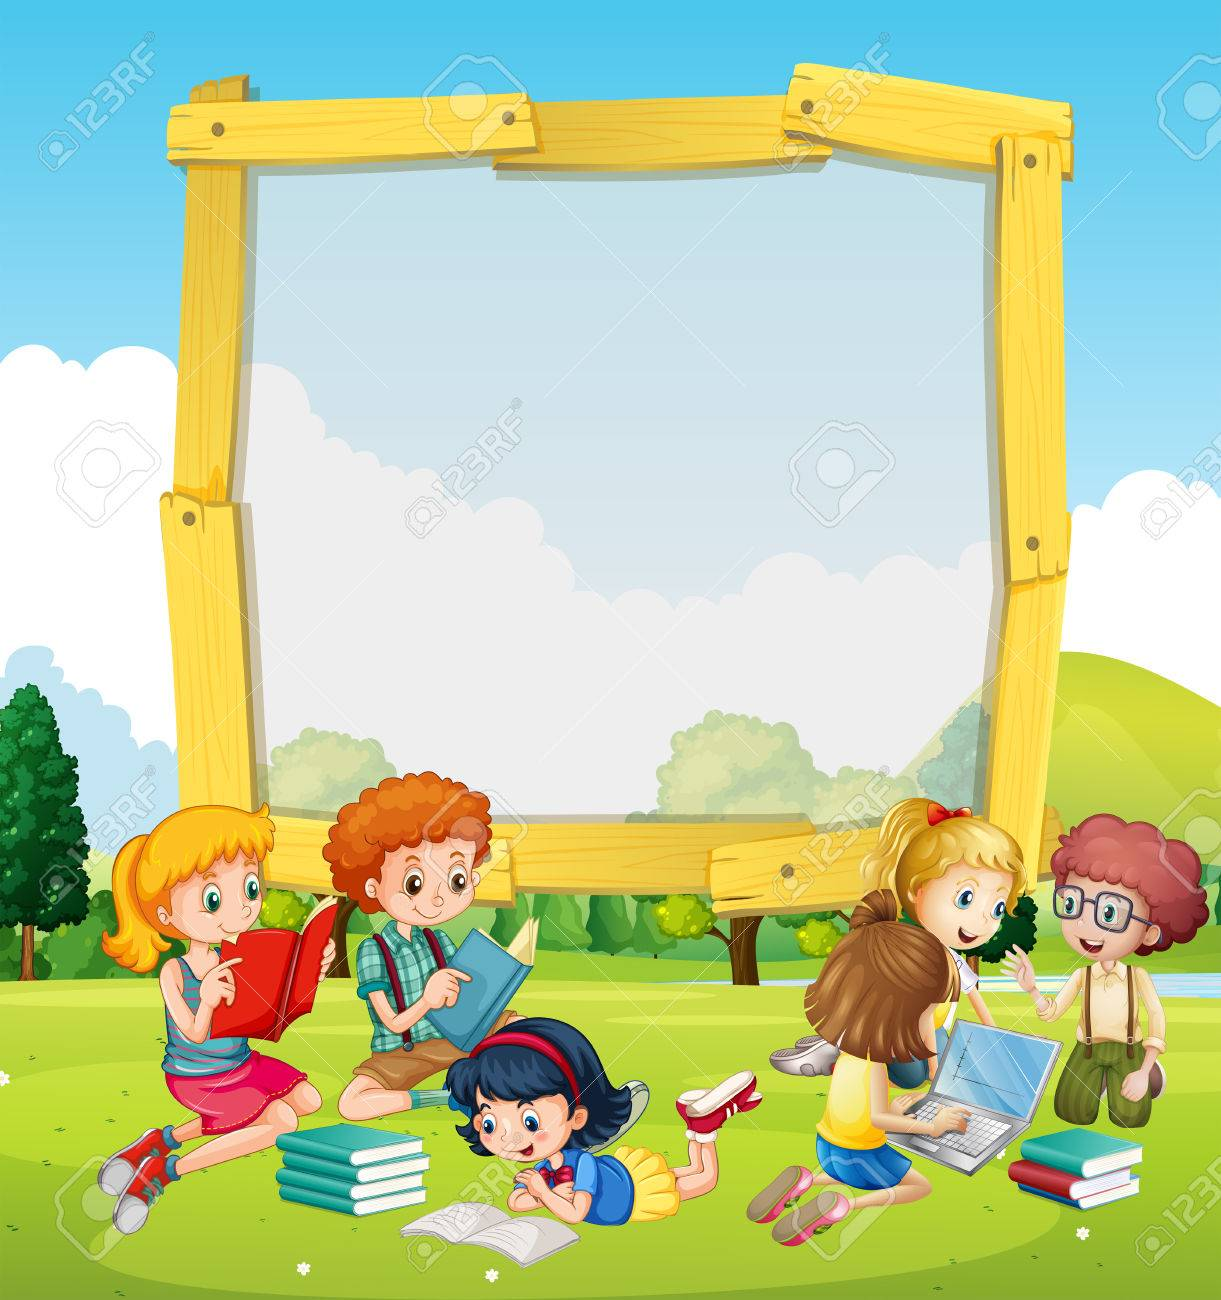 e4338e3b7ff340 Border Template With Kids Reading Illustration Royalty Free Cliparts ...